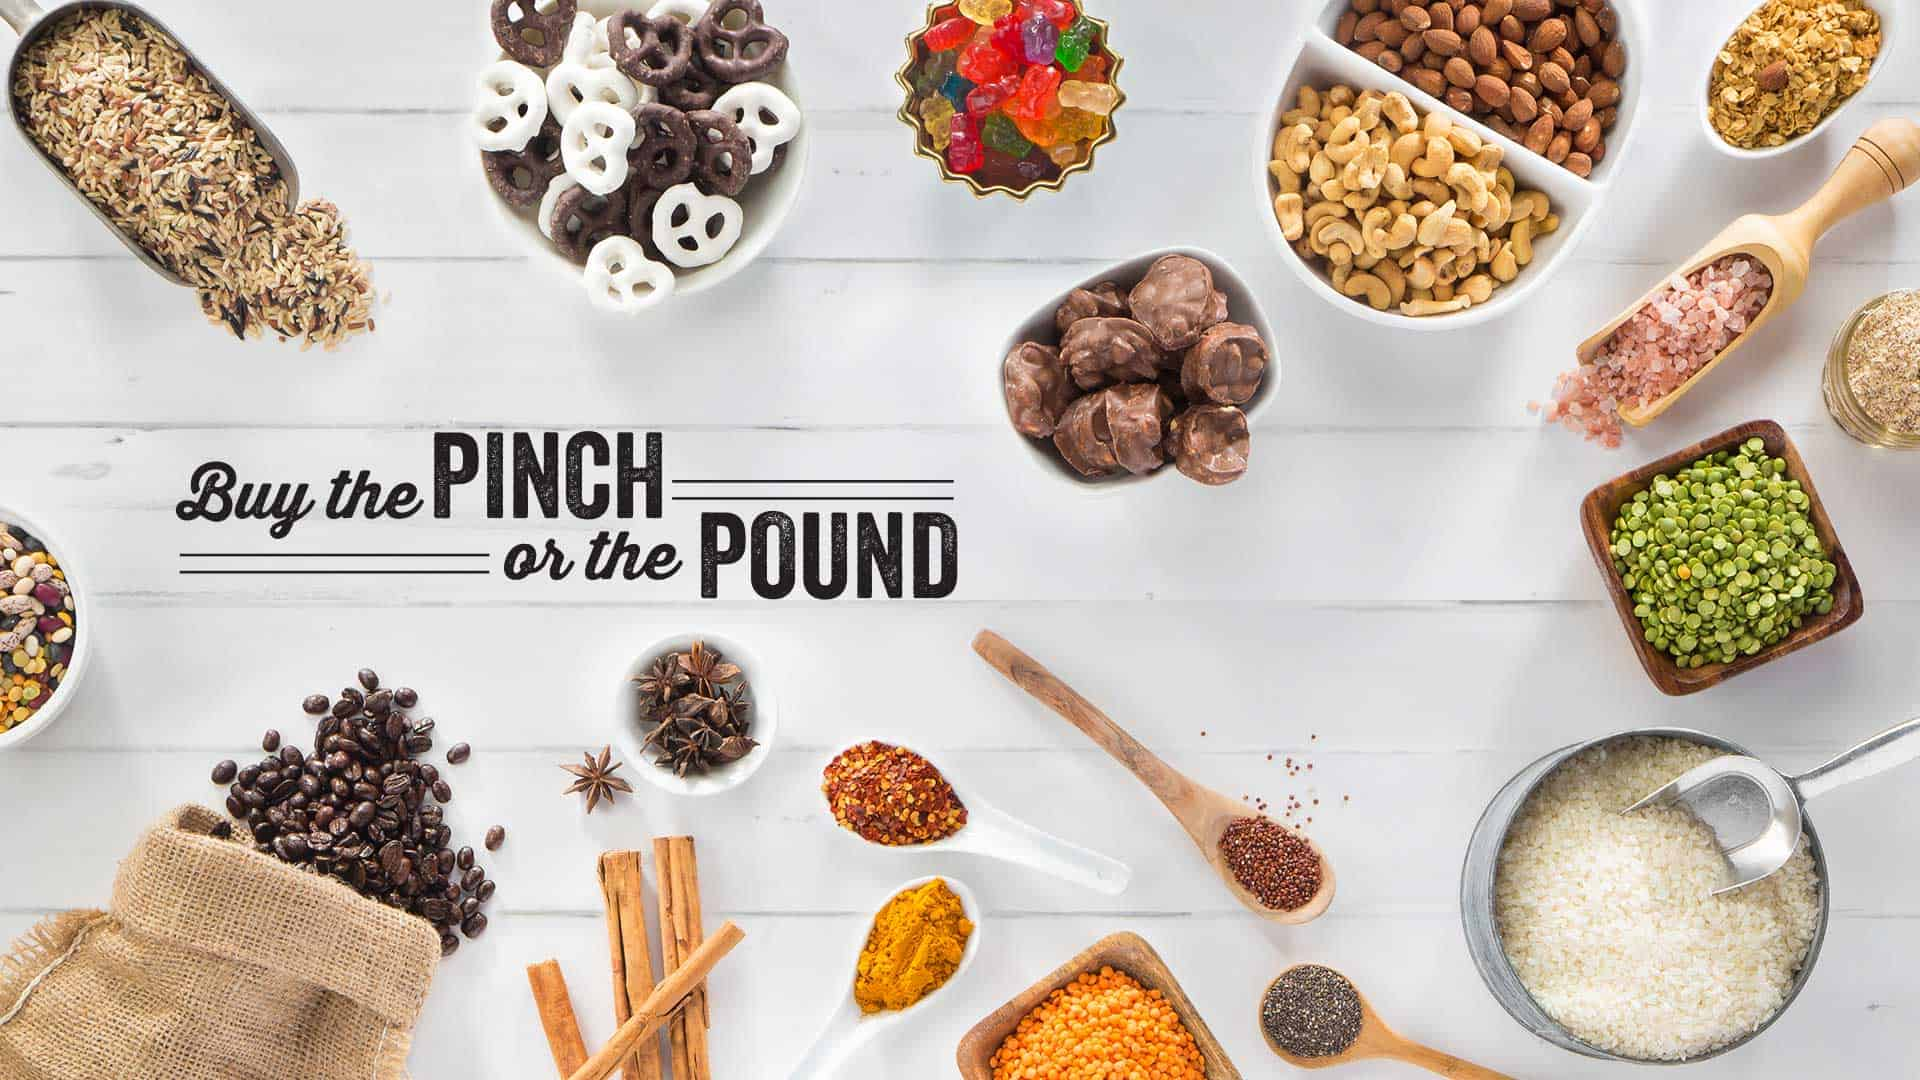 Buy the Pinch or the Pound Poster with assorted foods